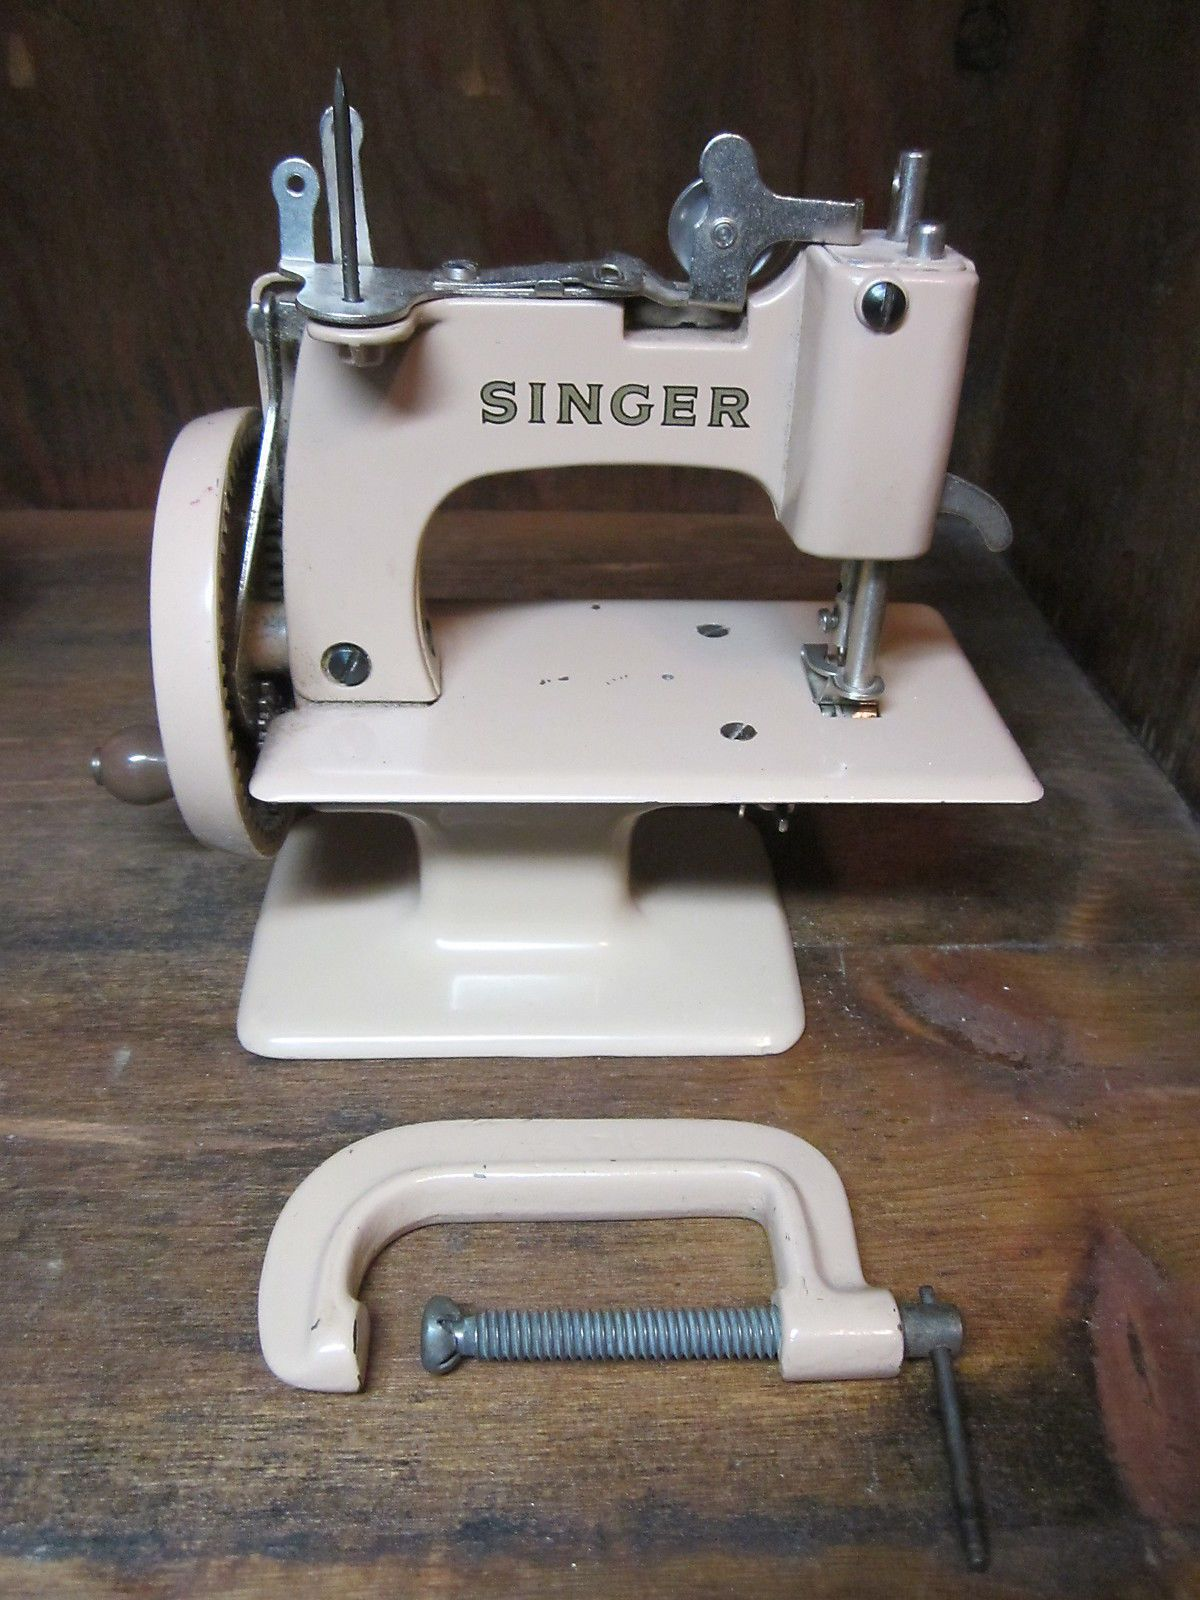 hight resolution of details about vintage singer sewing machine model 301 untested as is ez wiring harness kit http wwwvendiocom stores sewingvintage item